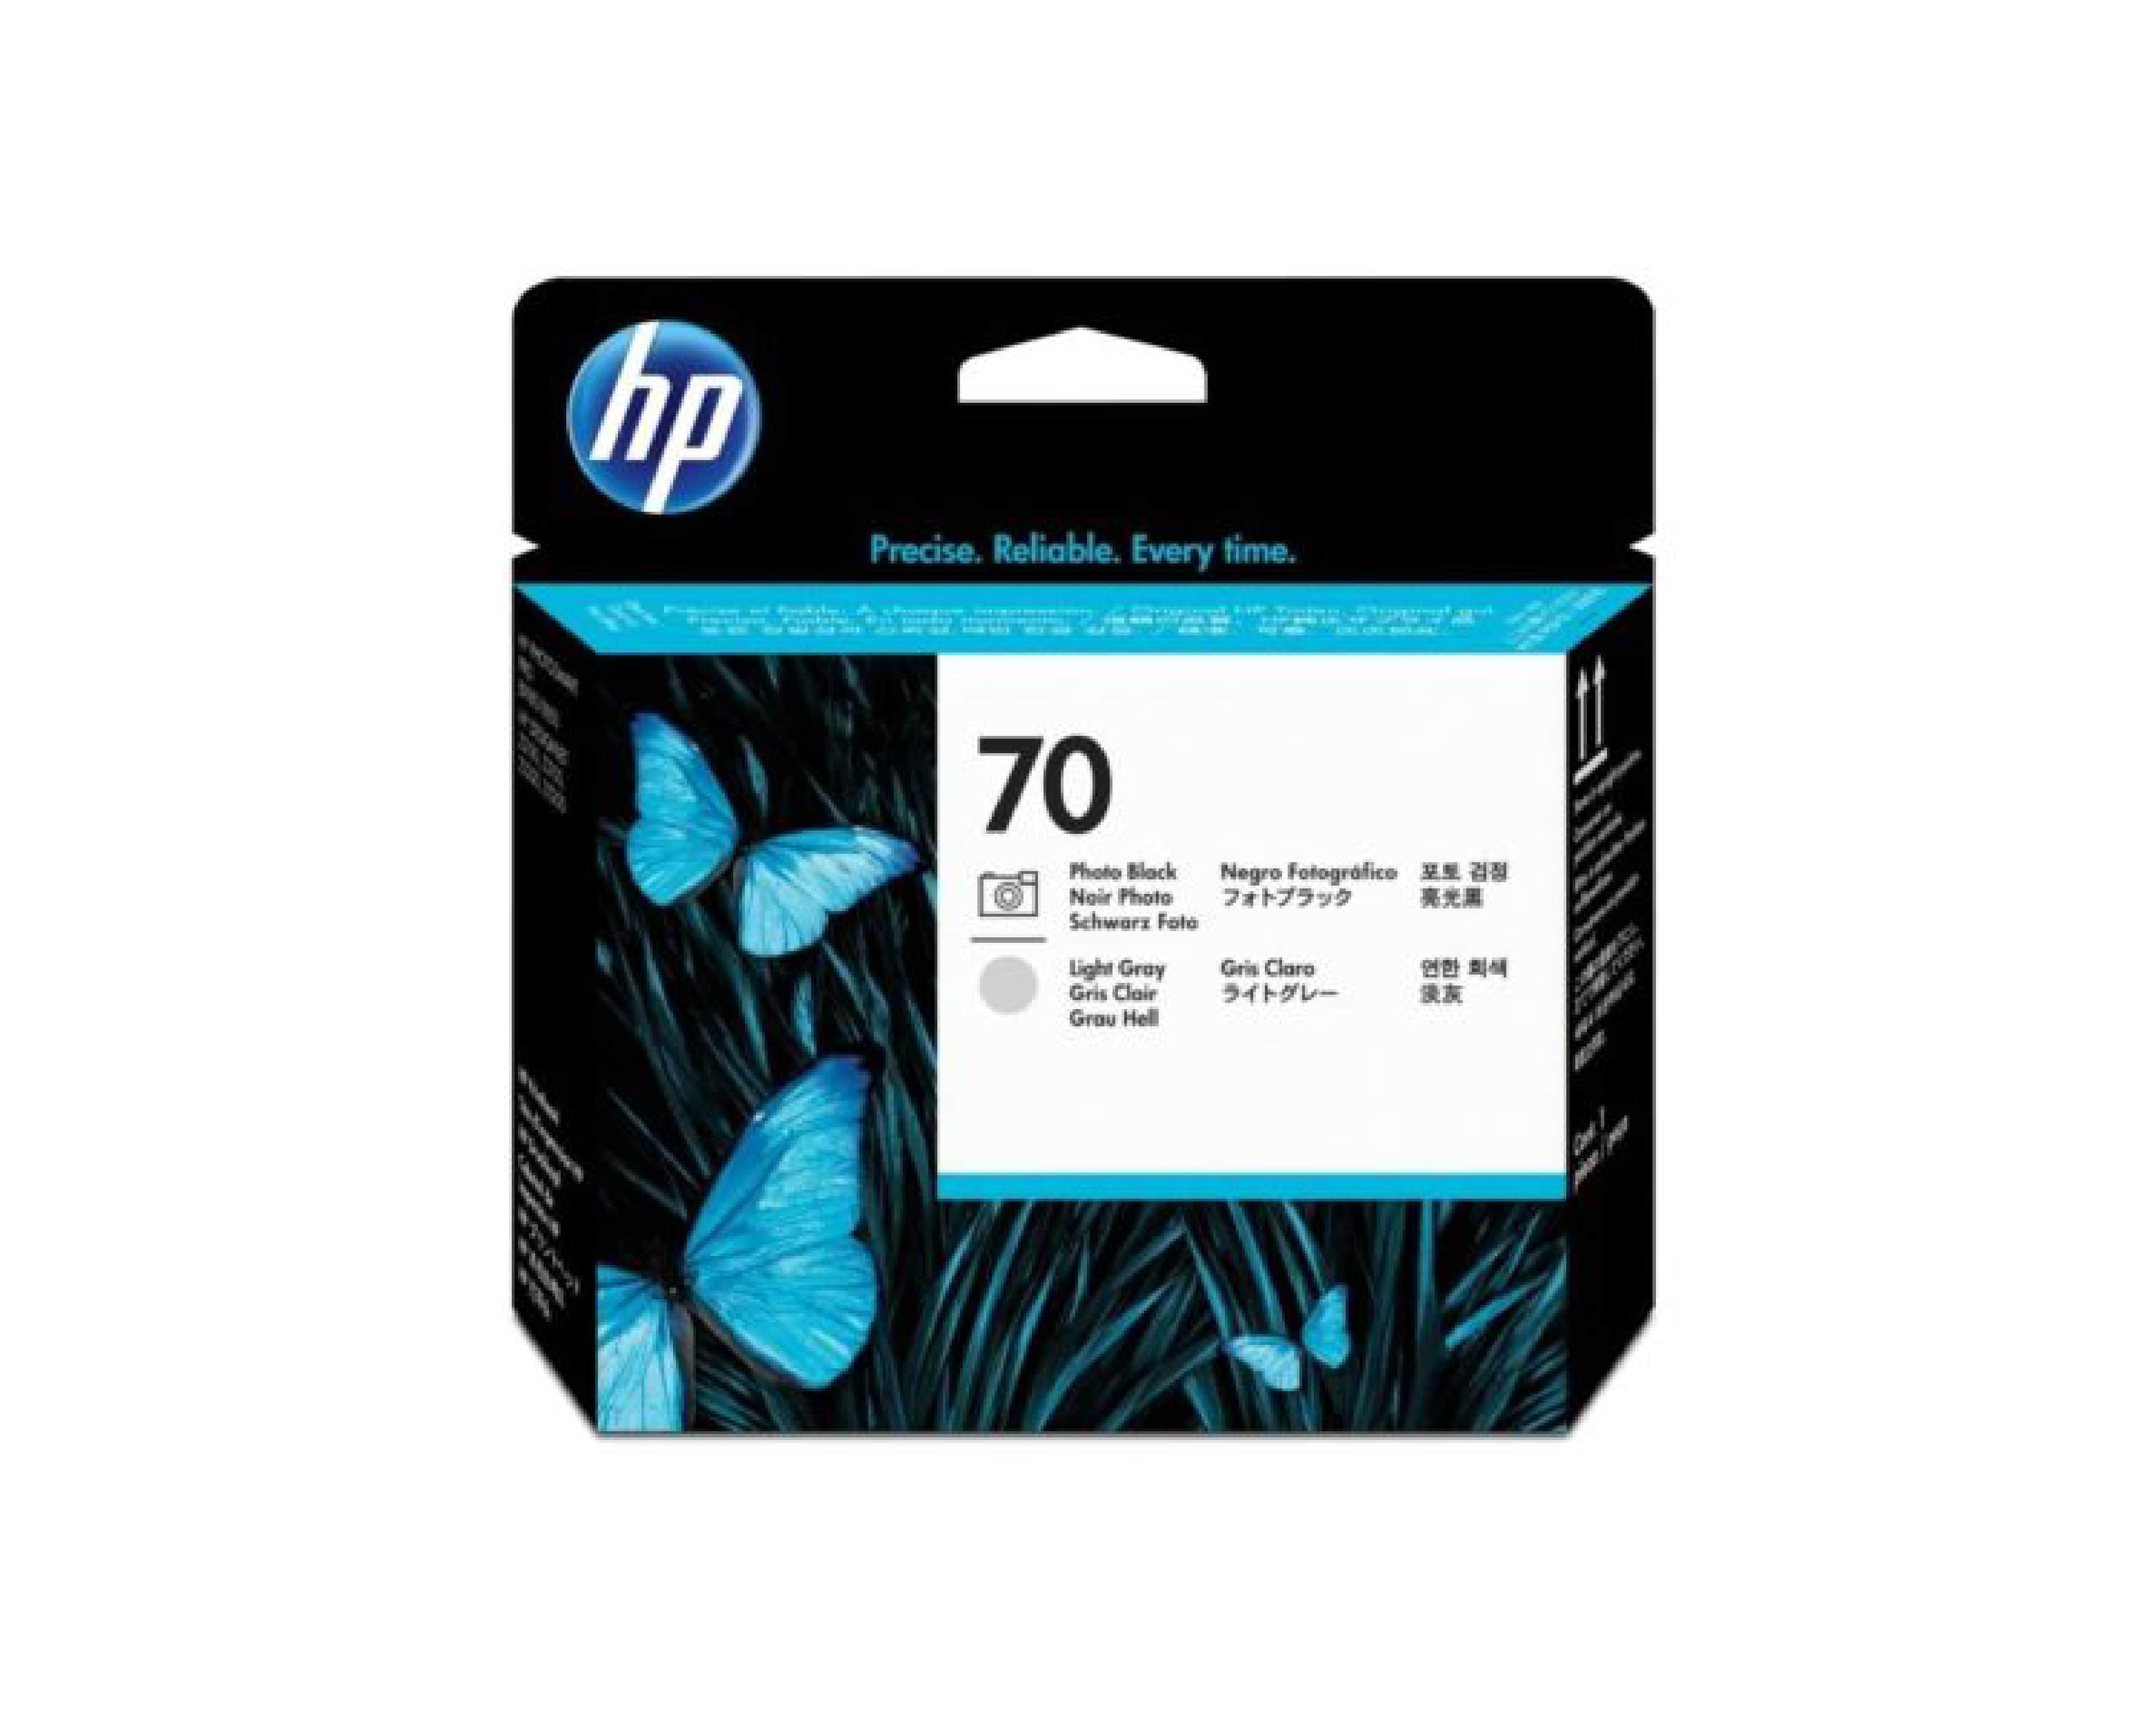 HP 70 DesignJet Printhead - Photo Black & Light Gray